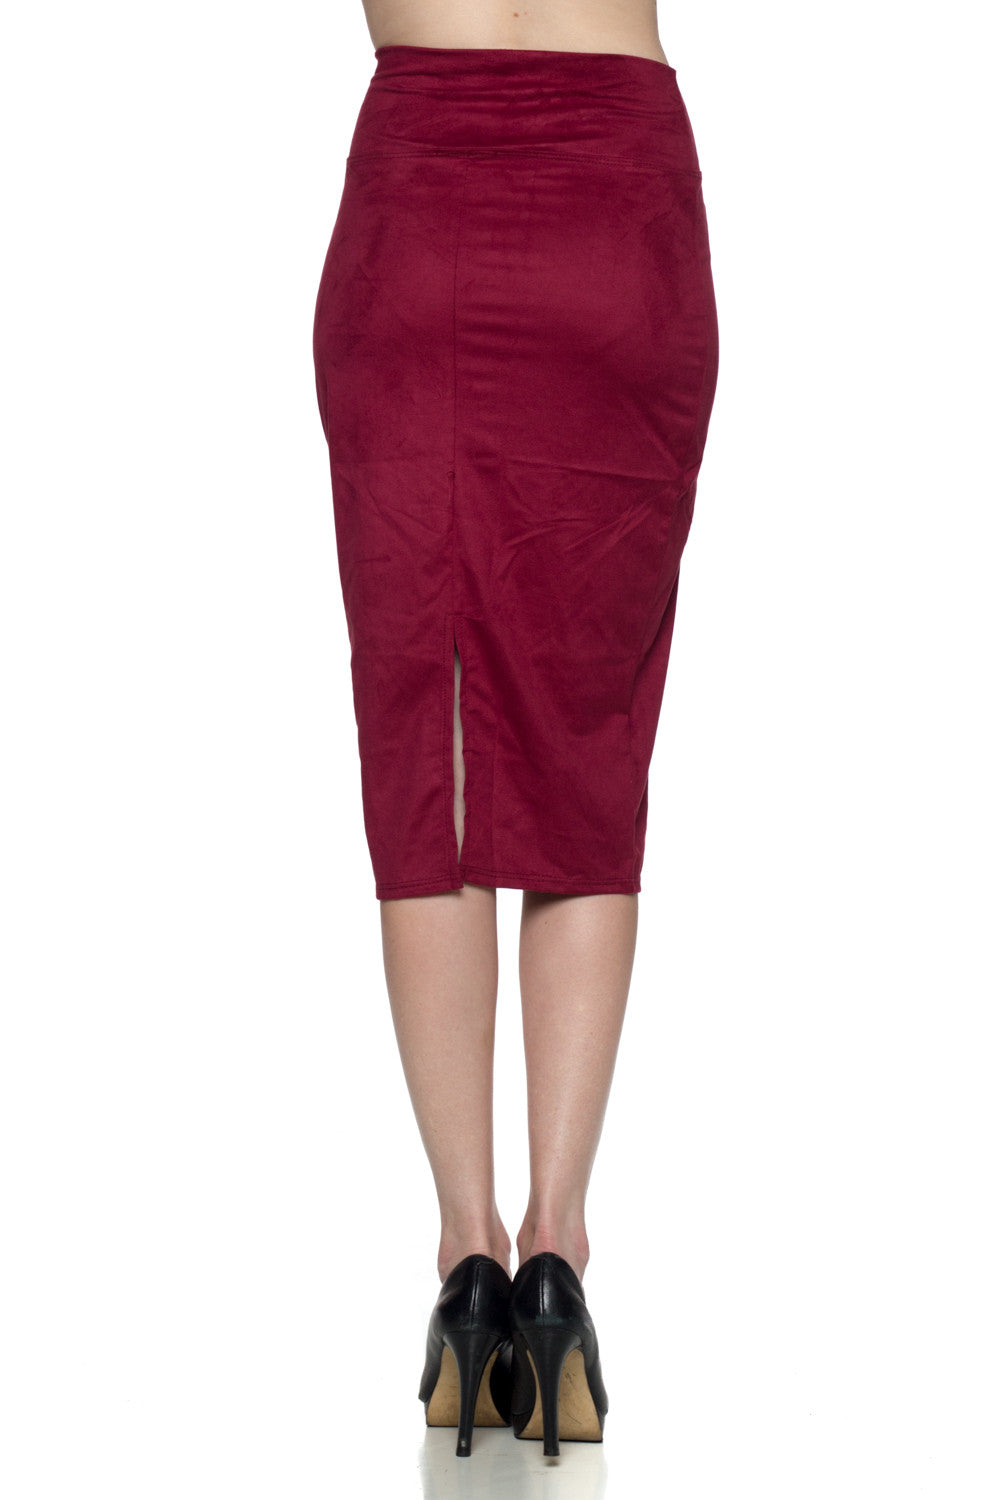 Women's High Waist Maroon Suede Midi Skirt